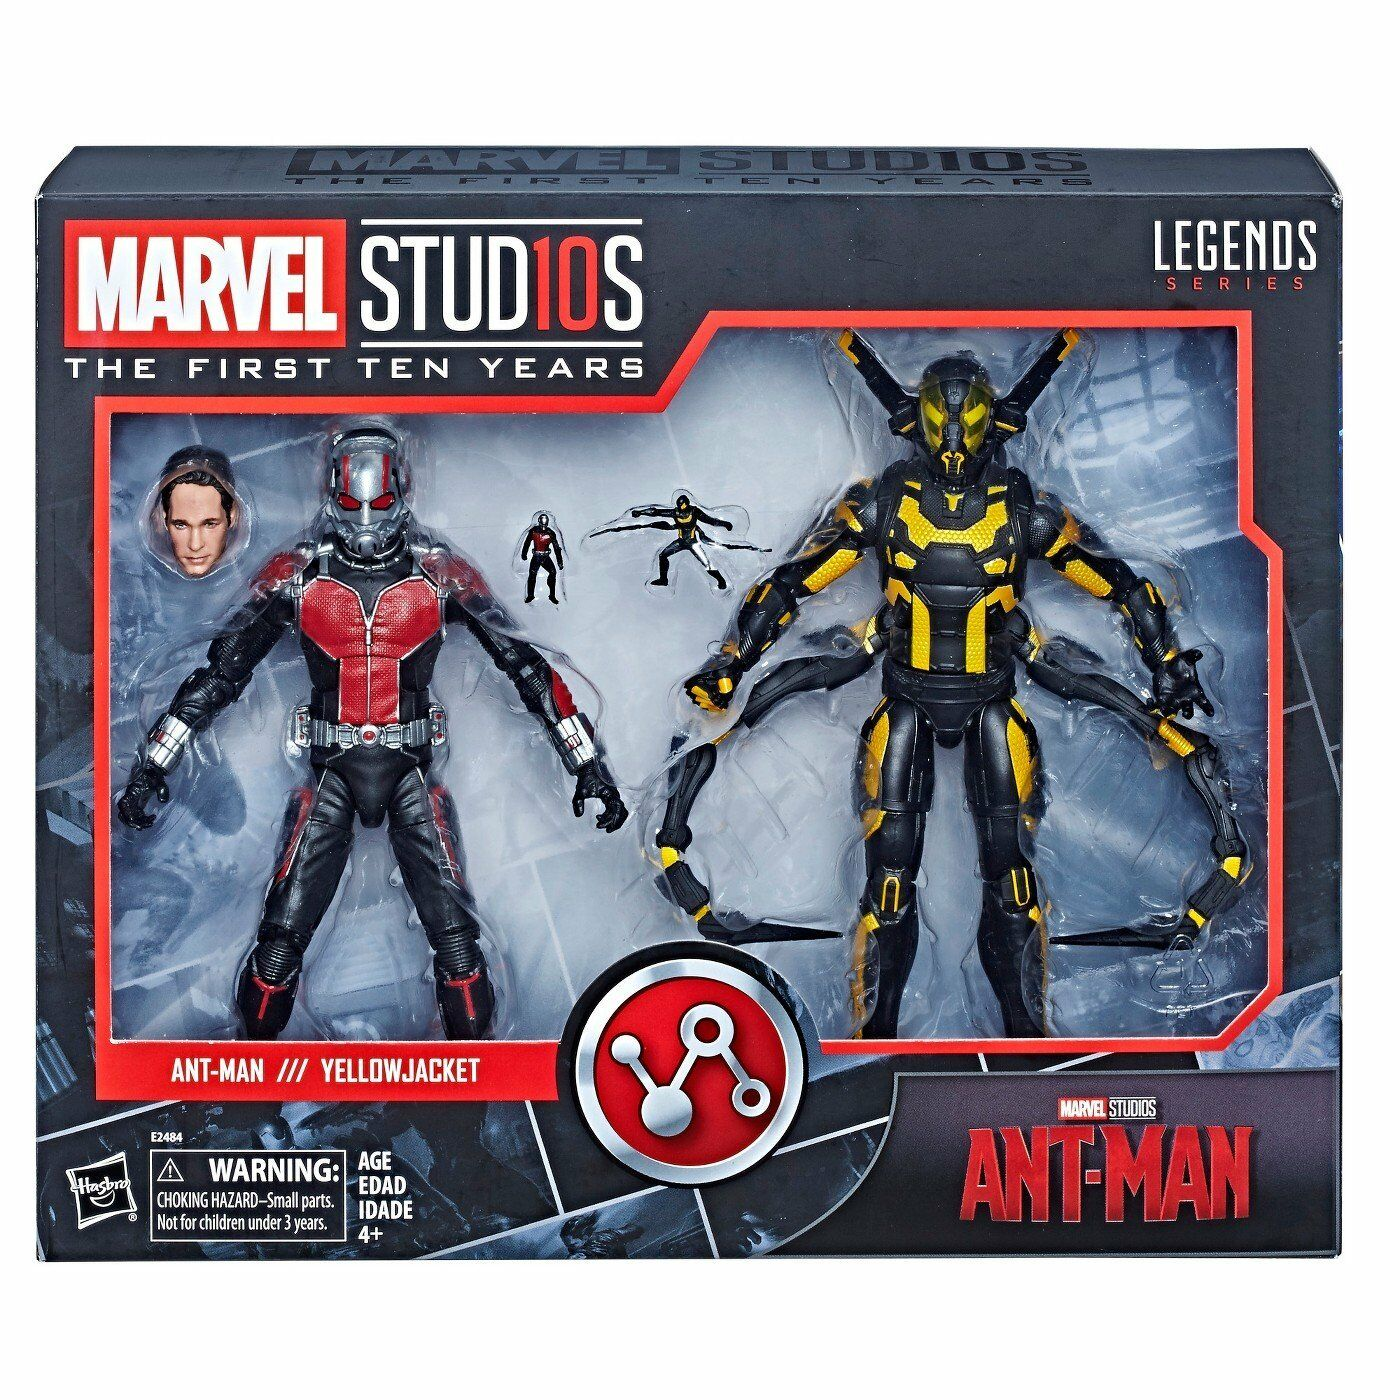 First Ten Years Ant-Man & Yellow Jacket